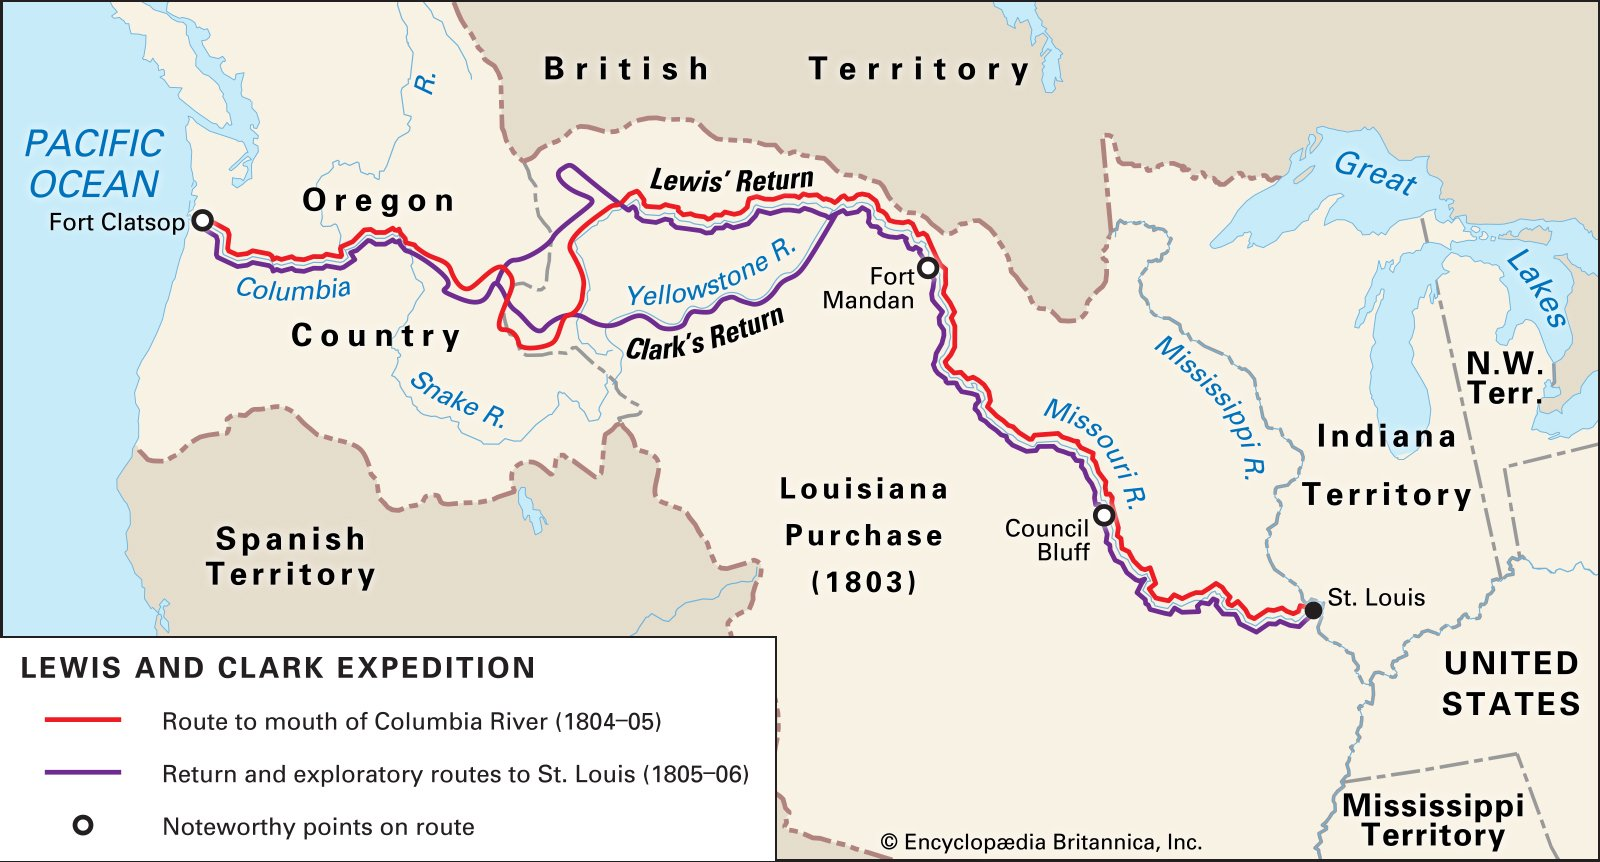 The expedition traveled almost 8,000 miles over the course of two years, from St. Louis to the Pacific Ocean and back. Image obtained from Encyclopedia Britannica.